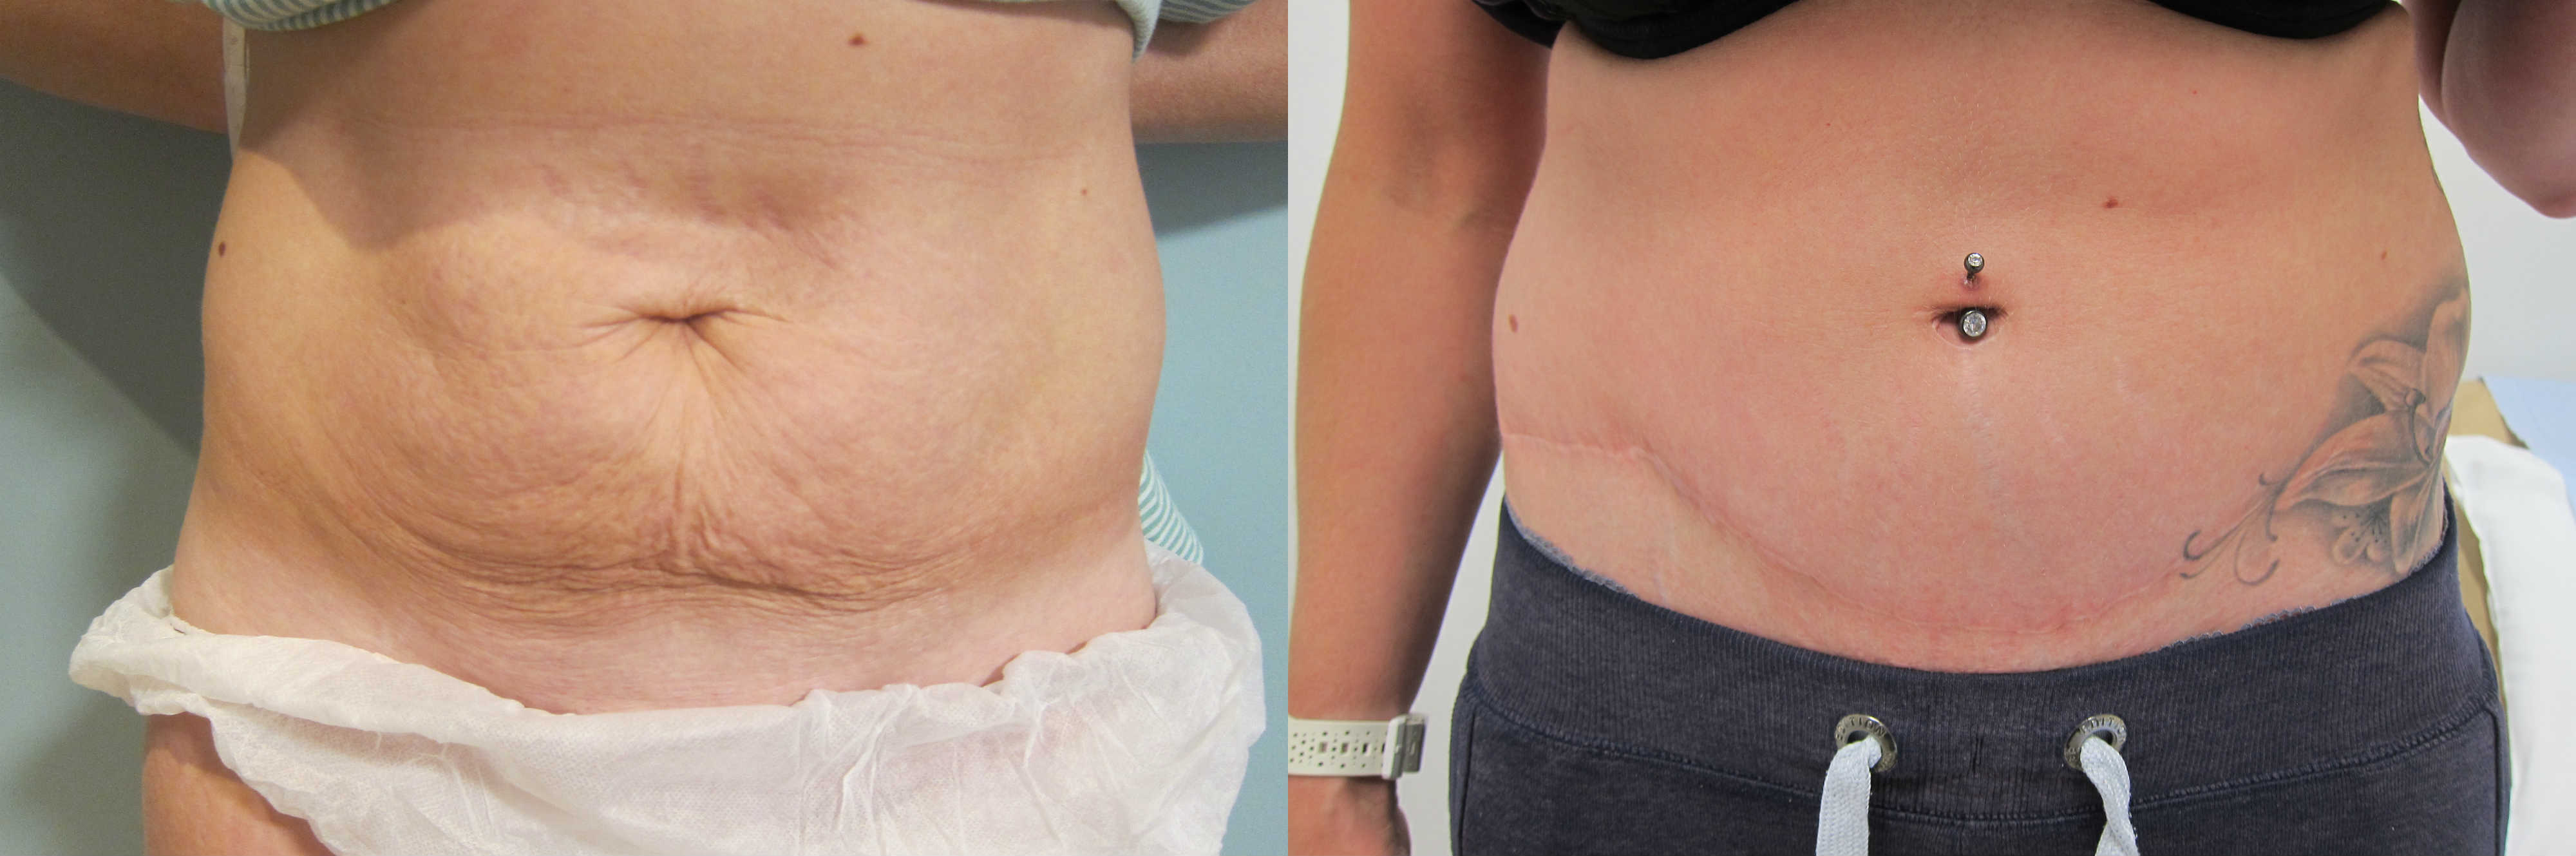 Tummy Tuck Before And After Photos   The STAIANO Clinic, Birmingham